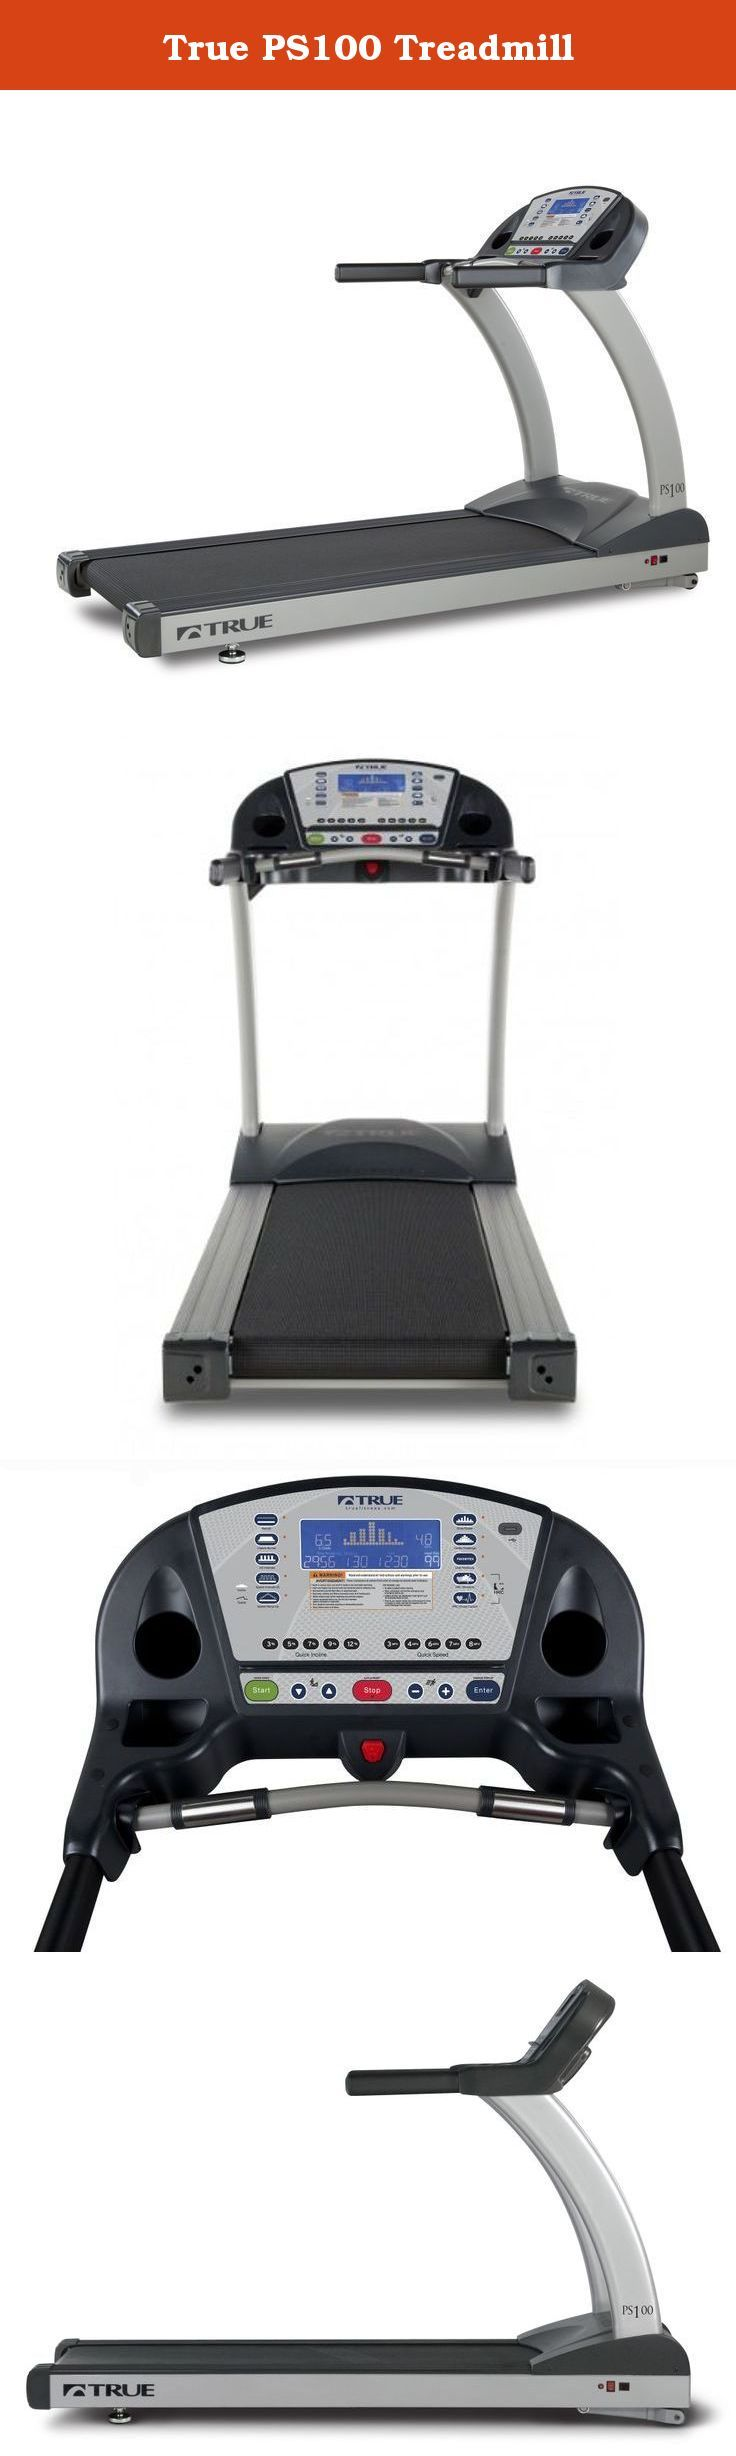 True PS100 Treadmill. TRUE FITNESS PS100 TREADMILL The TRUE PS100 offers affordable quality for your home fitness needs. Manufactured with commercial-grade materials and the finest components, the PS 100 is built for extreme durability. Coupled with a great warranty and service plan, you know that your treadmill will stand up to years of heavy use. The PS100 offers one of the largest running surfaces in the industry. In addition, the TRUE Soft System ensures the most orthopedically…